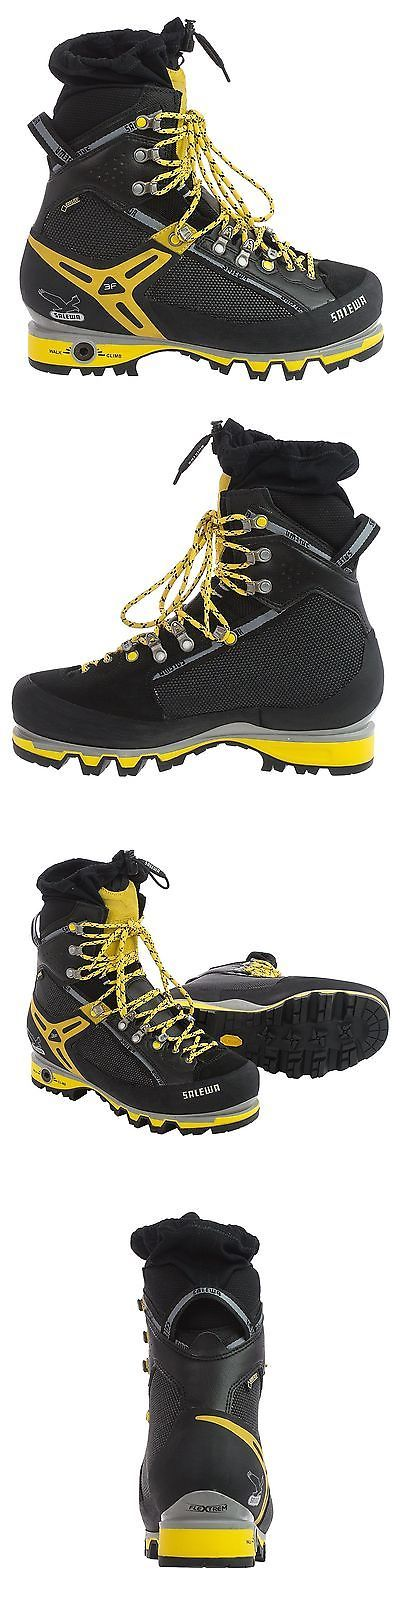 Ice Climbing Equipment 158981: Salewa Pro Vertical Gore-Tex® Mountaineering Boots -Size 10 43 Wide New -> BUY IT NOW ONLY: $379.95 on eBay!